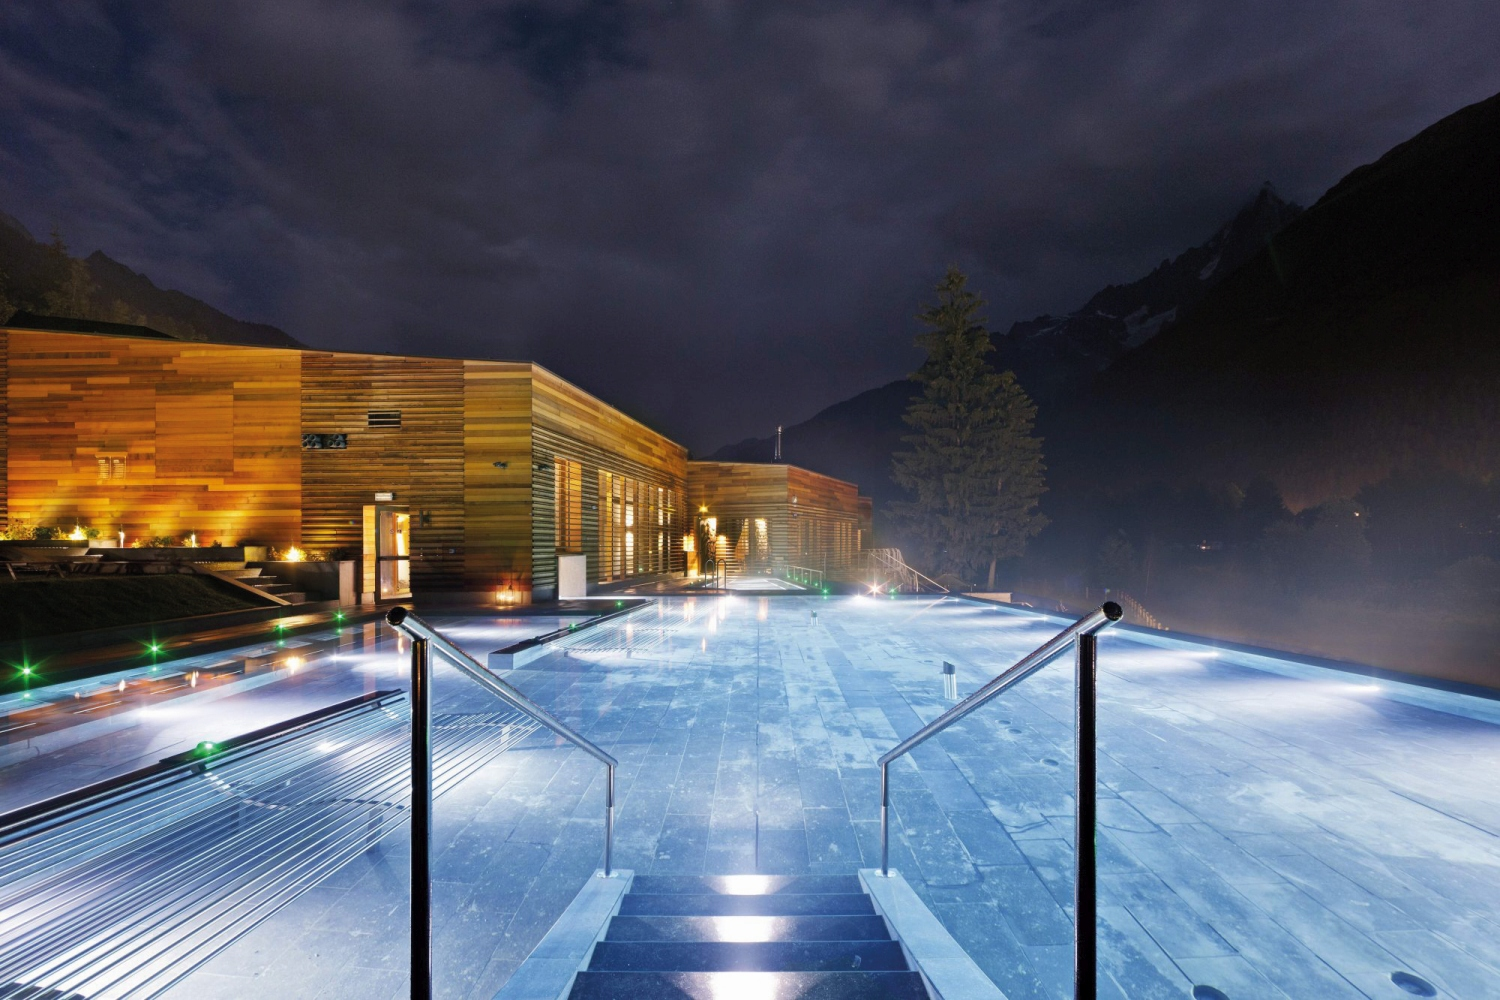 QC_Terme_Spa_Chamonix_France.jpg